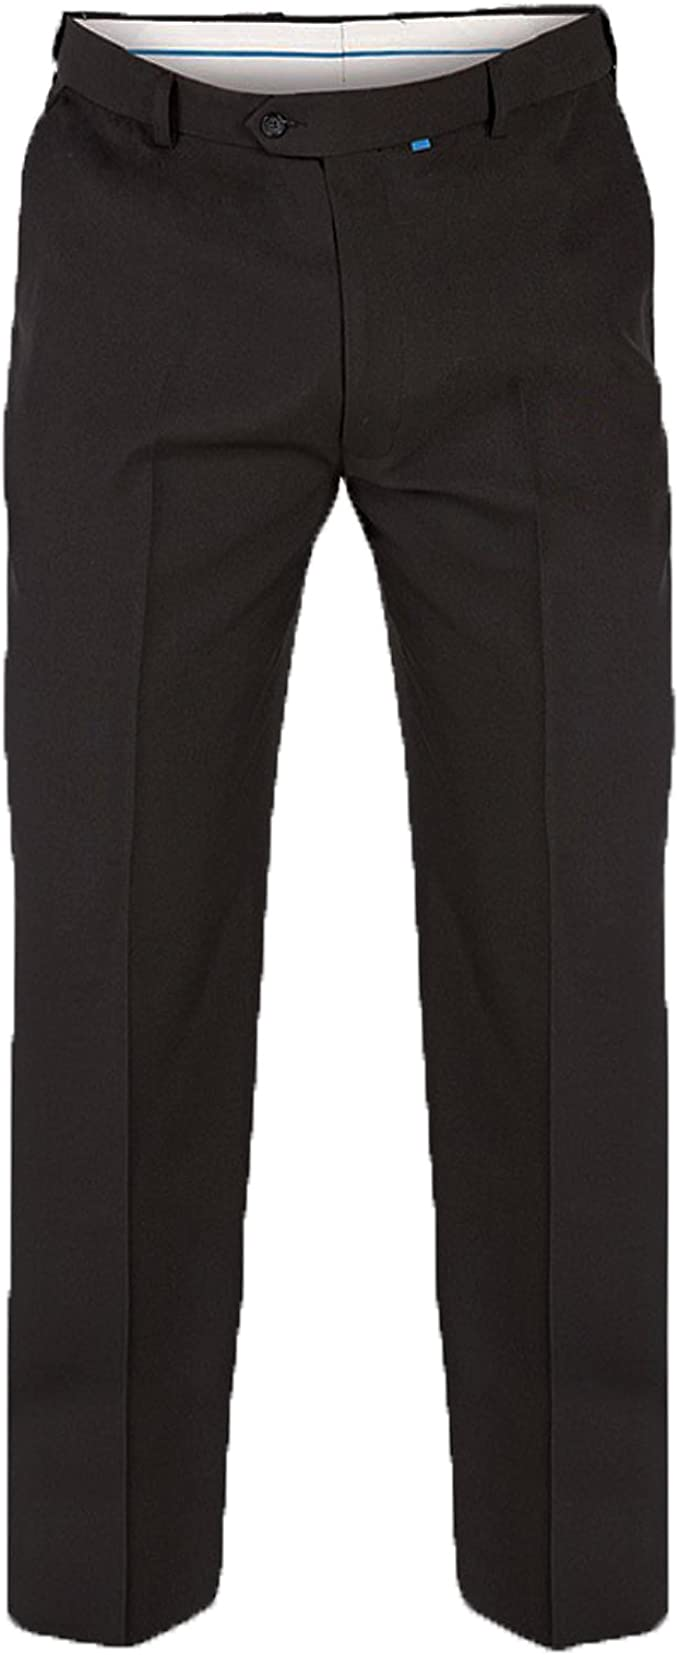 In Black In Waist 42 To 70 inches Inside 29//31//33 D555 Mens Formal Flexi Waist Trousers Max